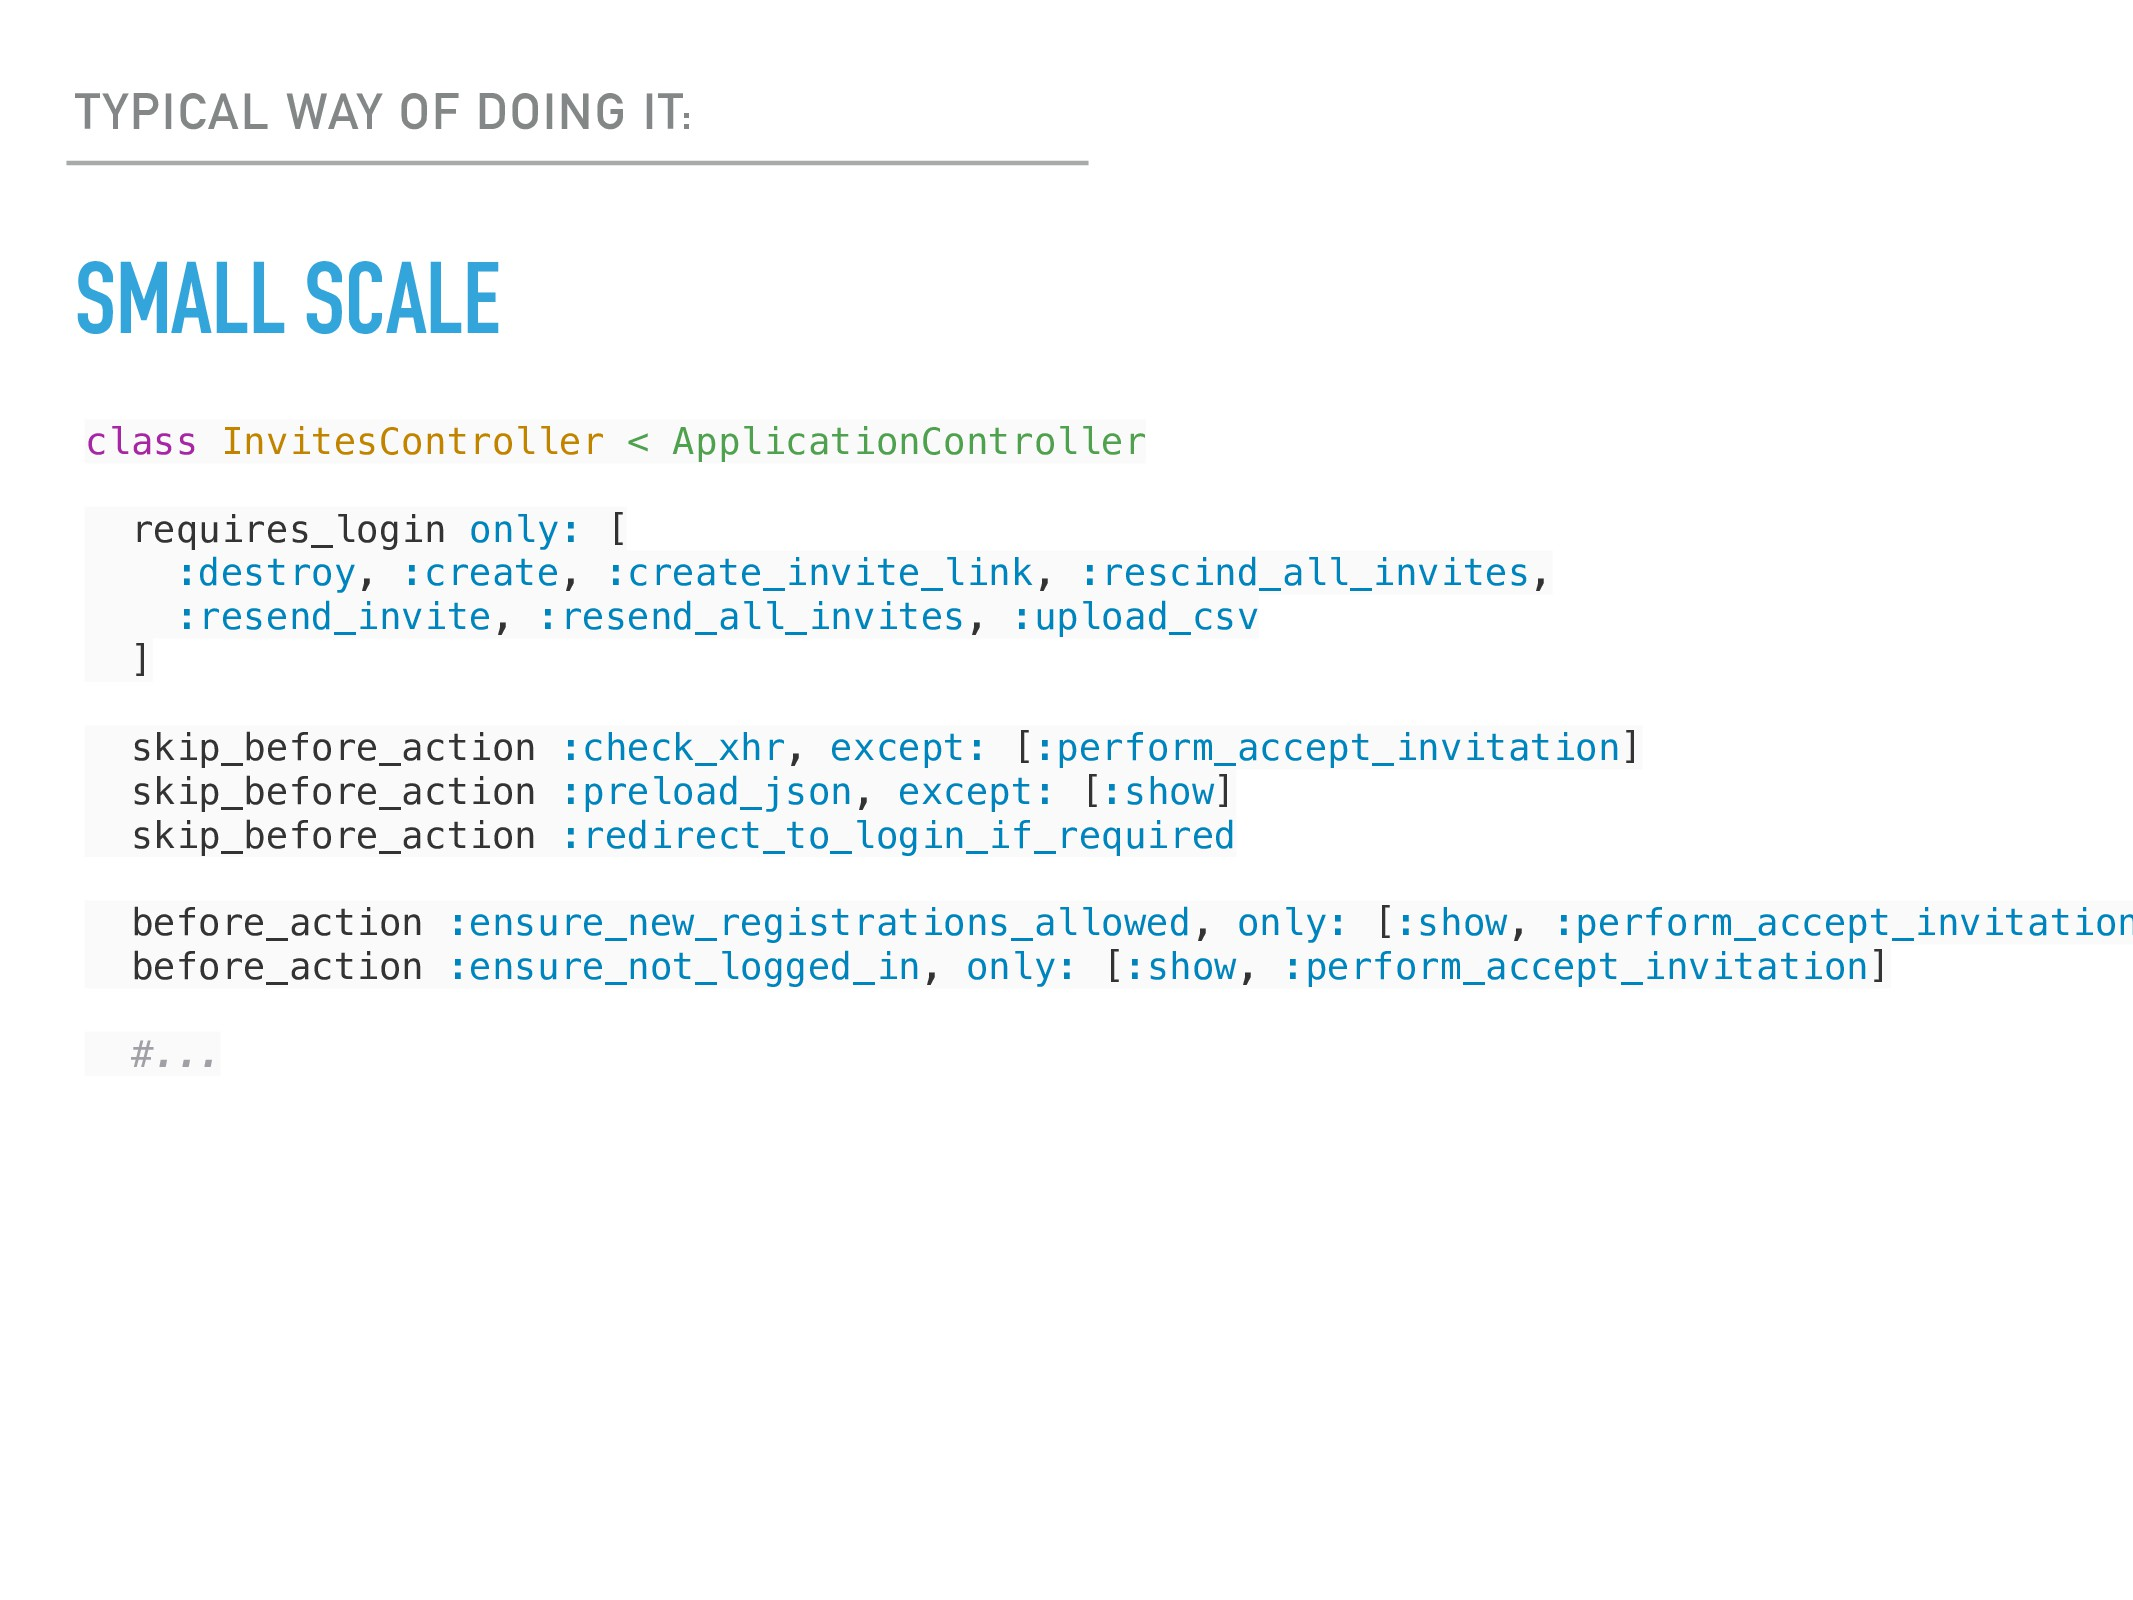 SMALL SCALE TYPICAL WAY OF DOING IT: class Invi...